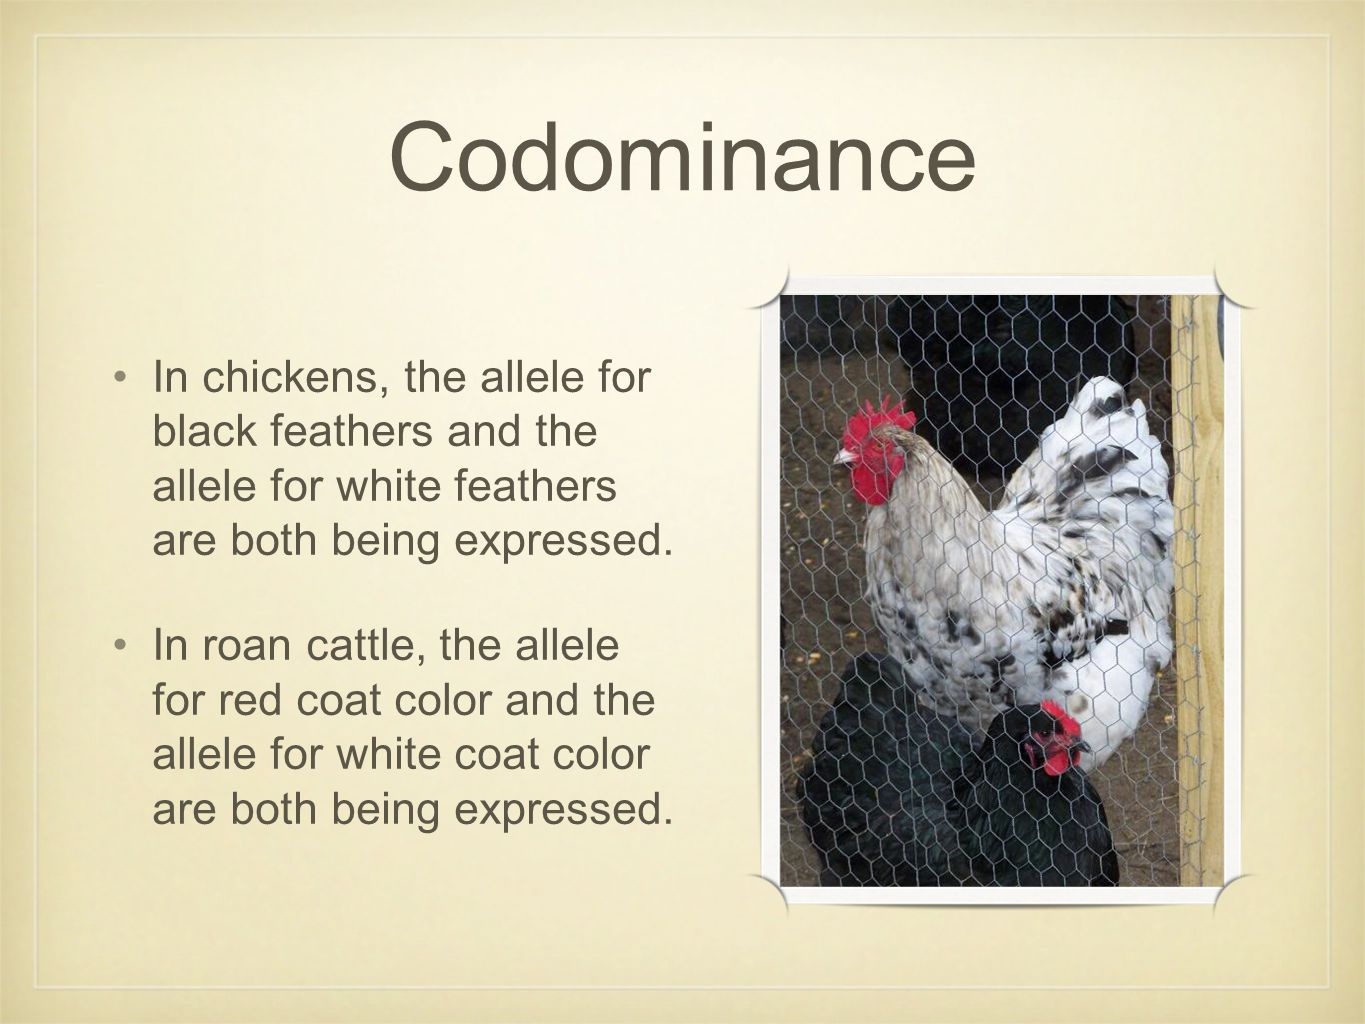 Codominance In chickens, the allele for black feathers and the allele for white feathers are both being expressed.